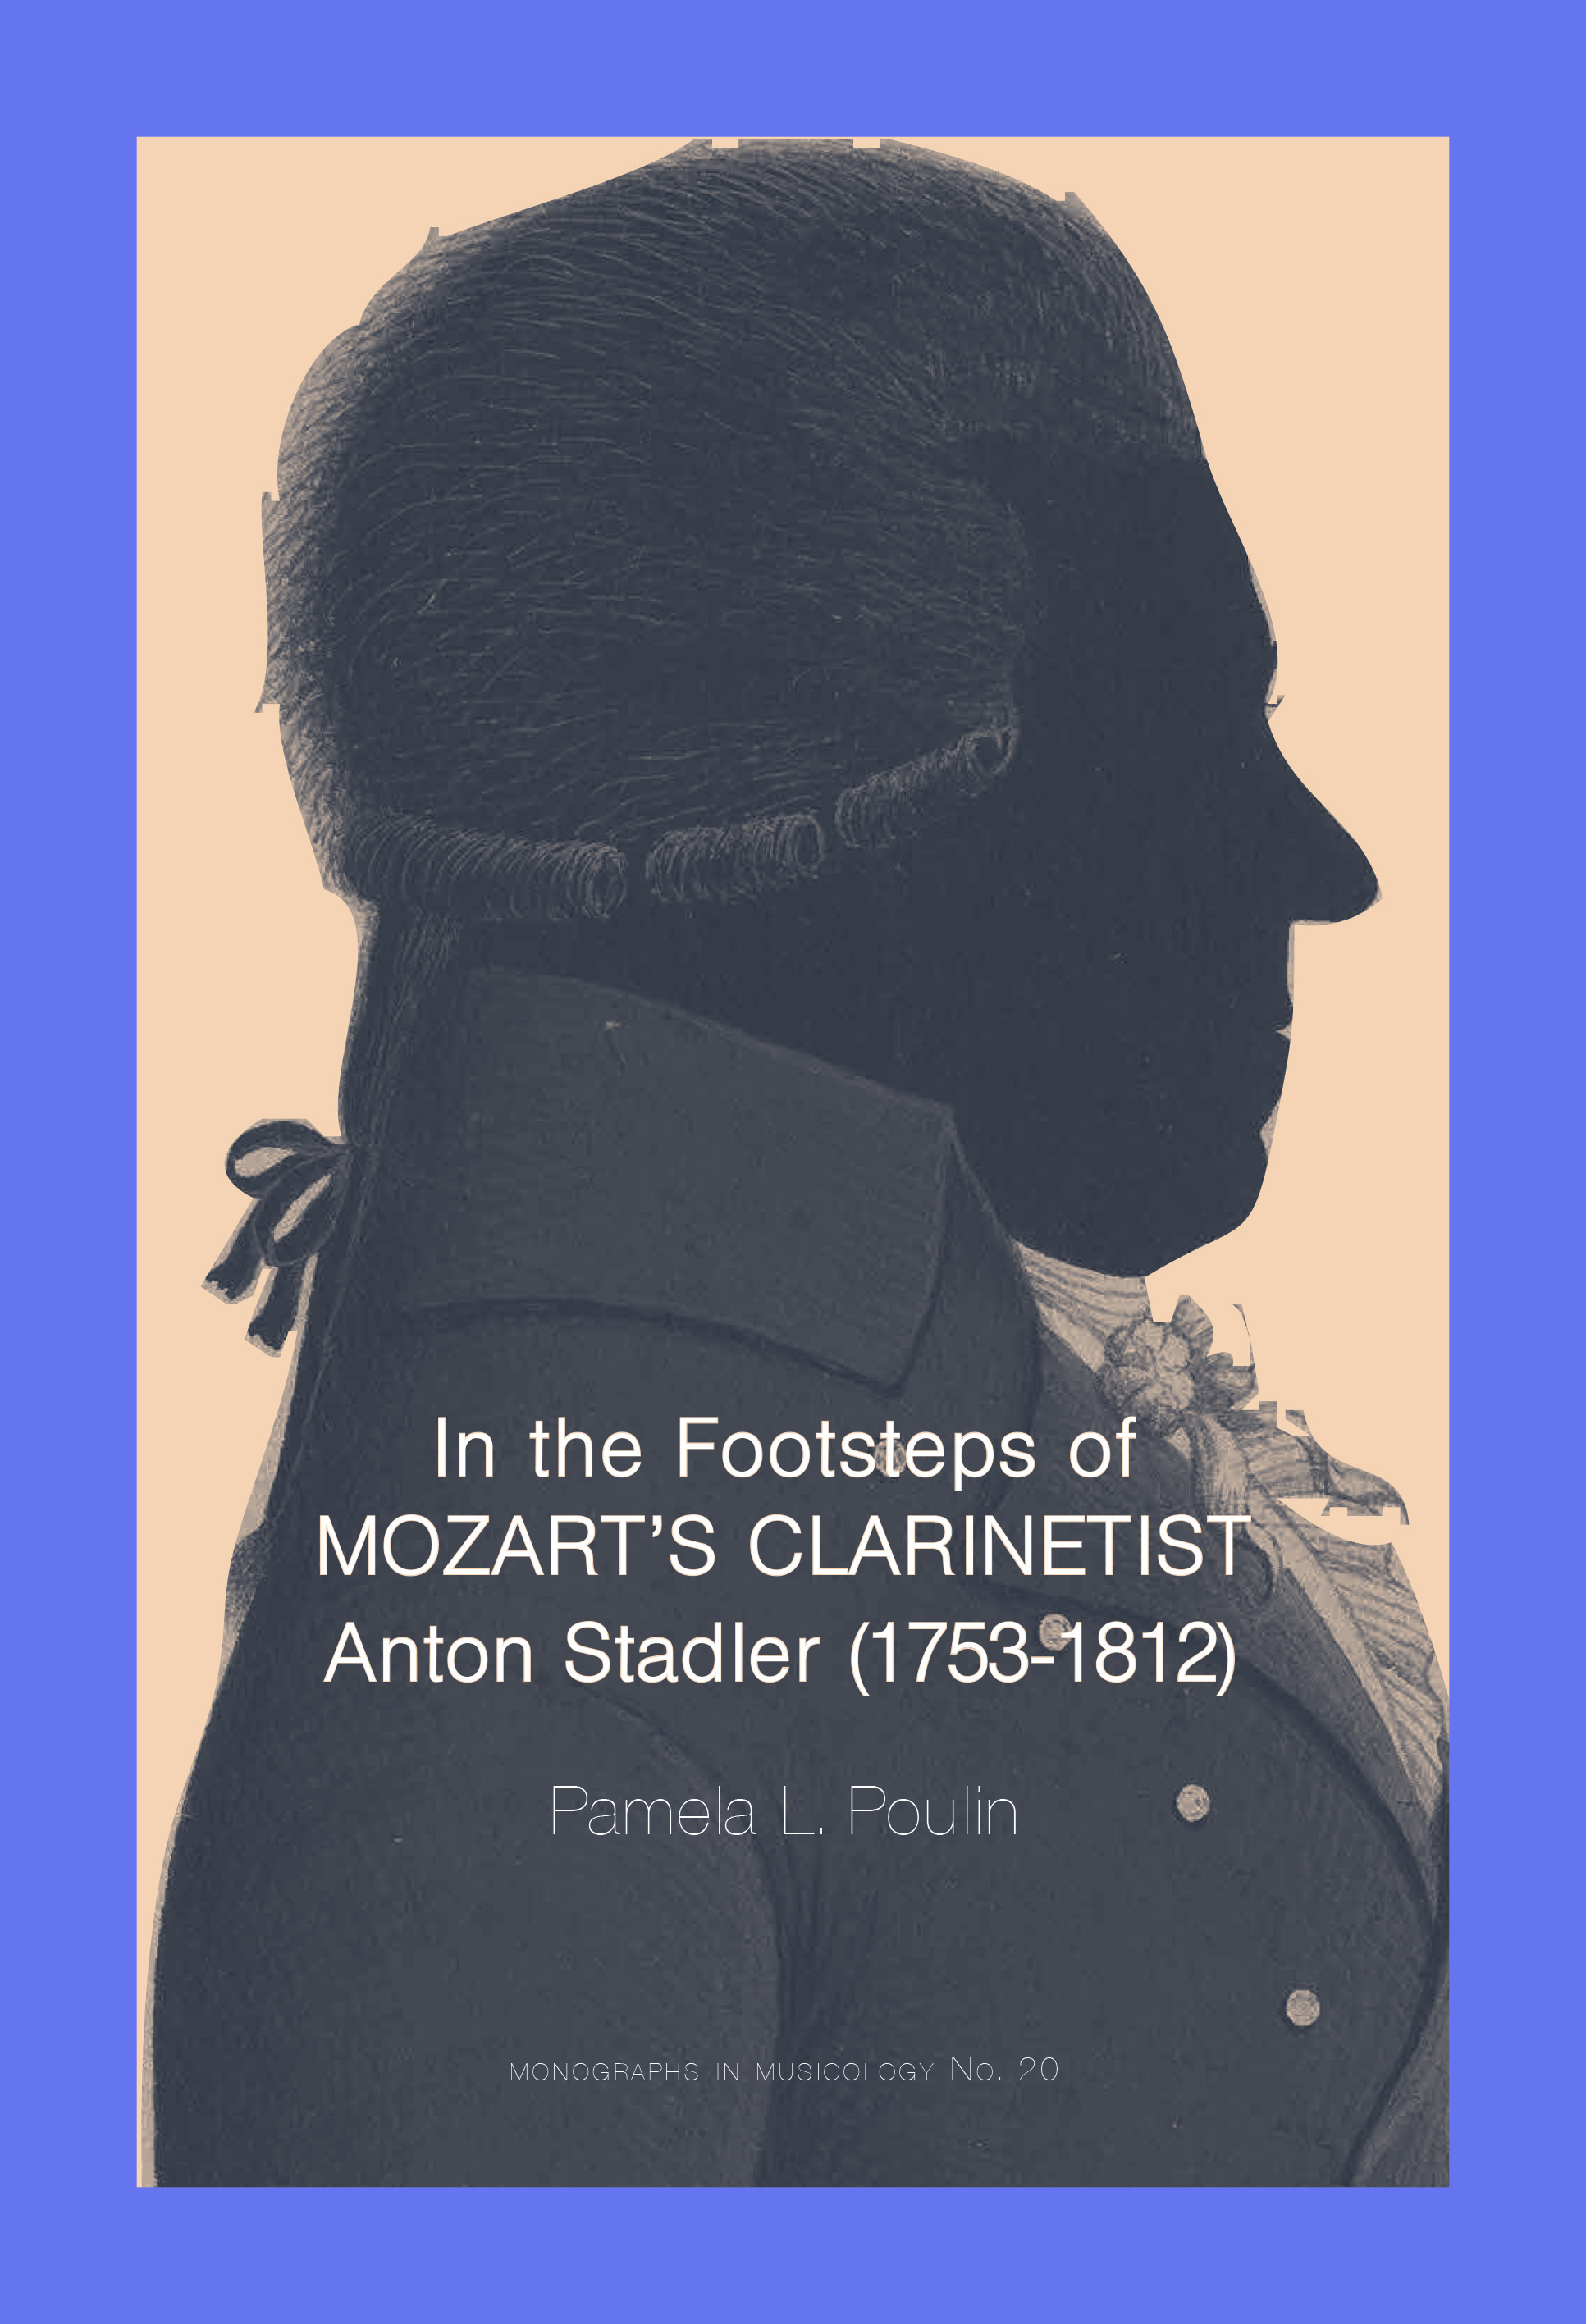 In the Footsteps of Mozart's Clarinetist